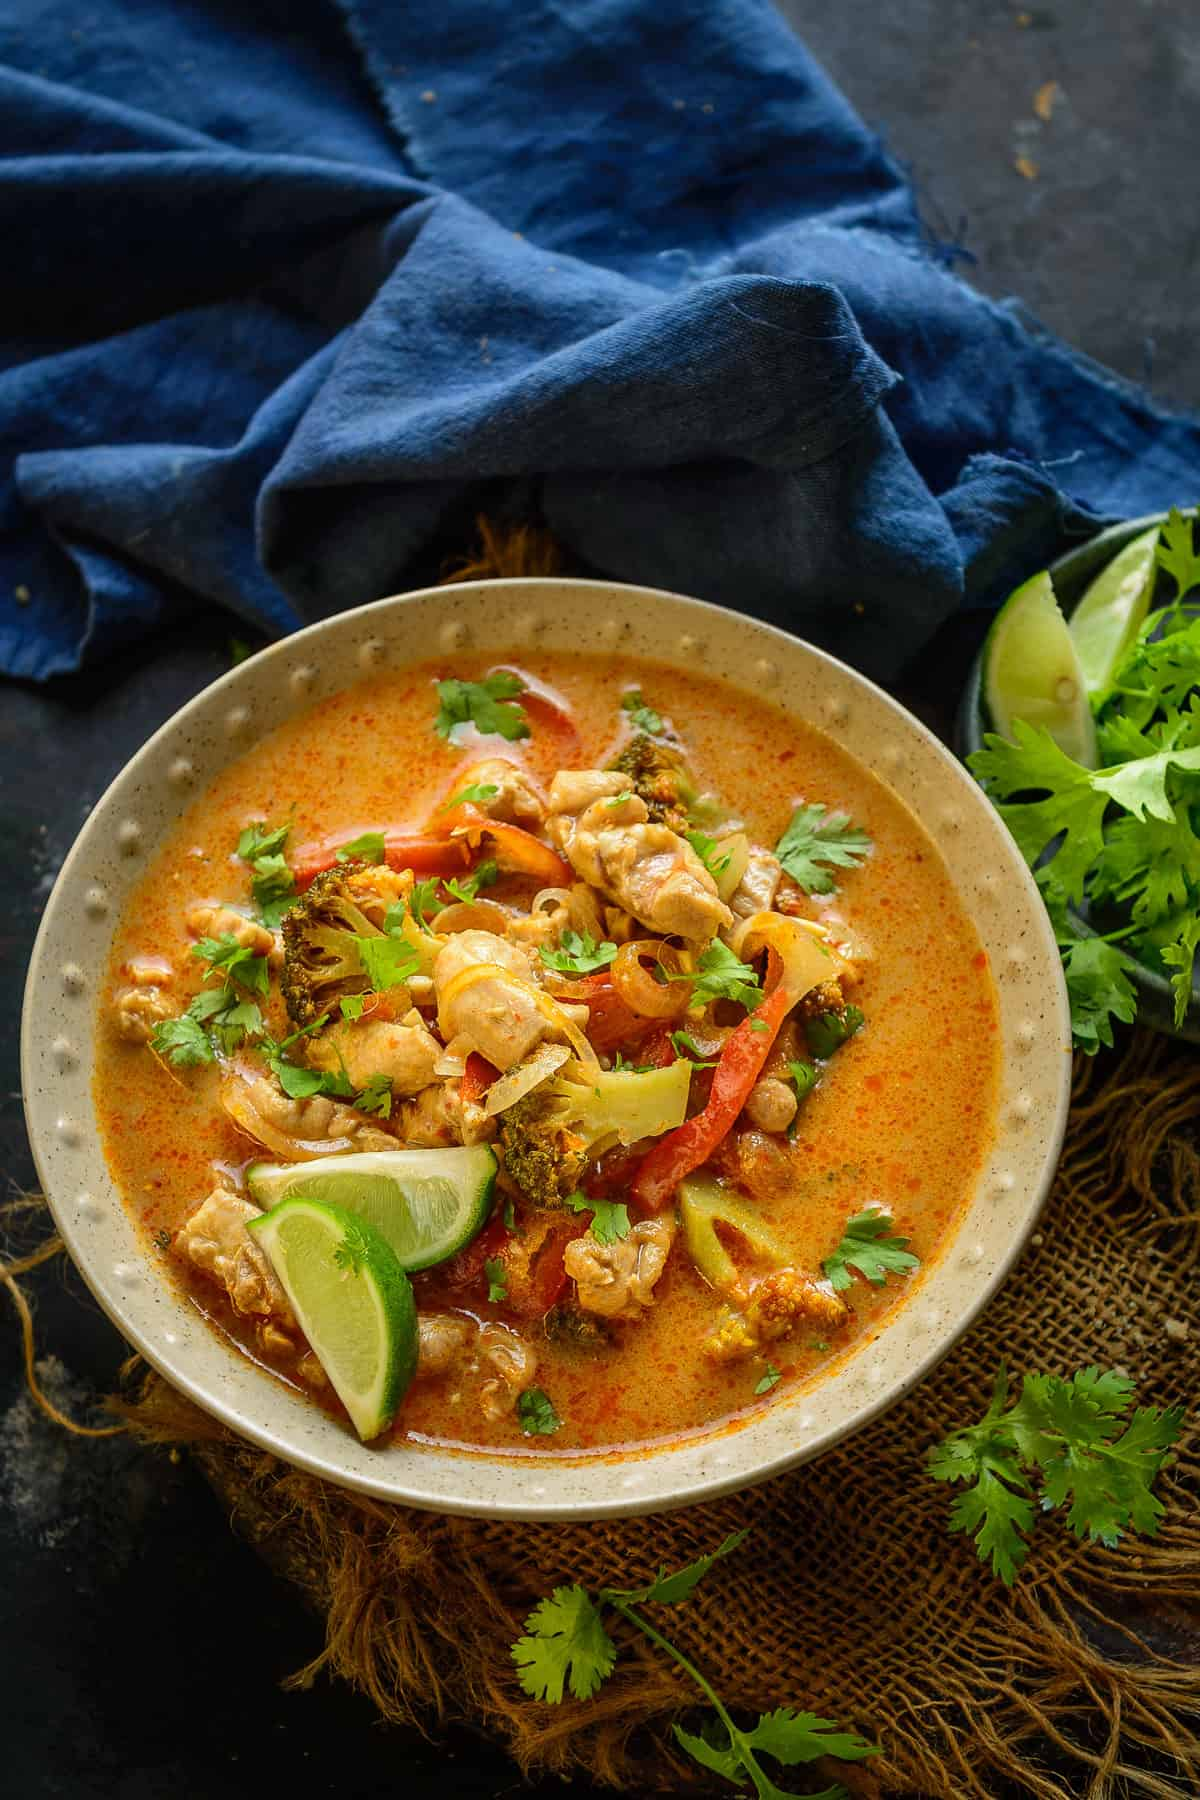 Thai Red Curry served in a bowl.